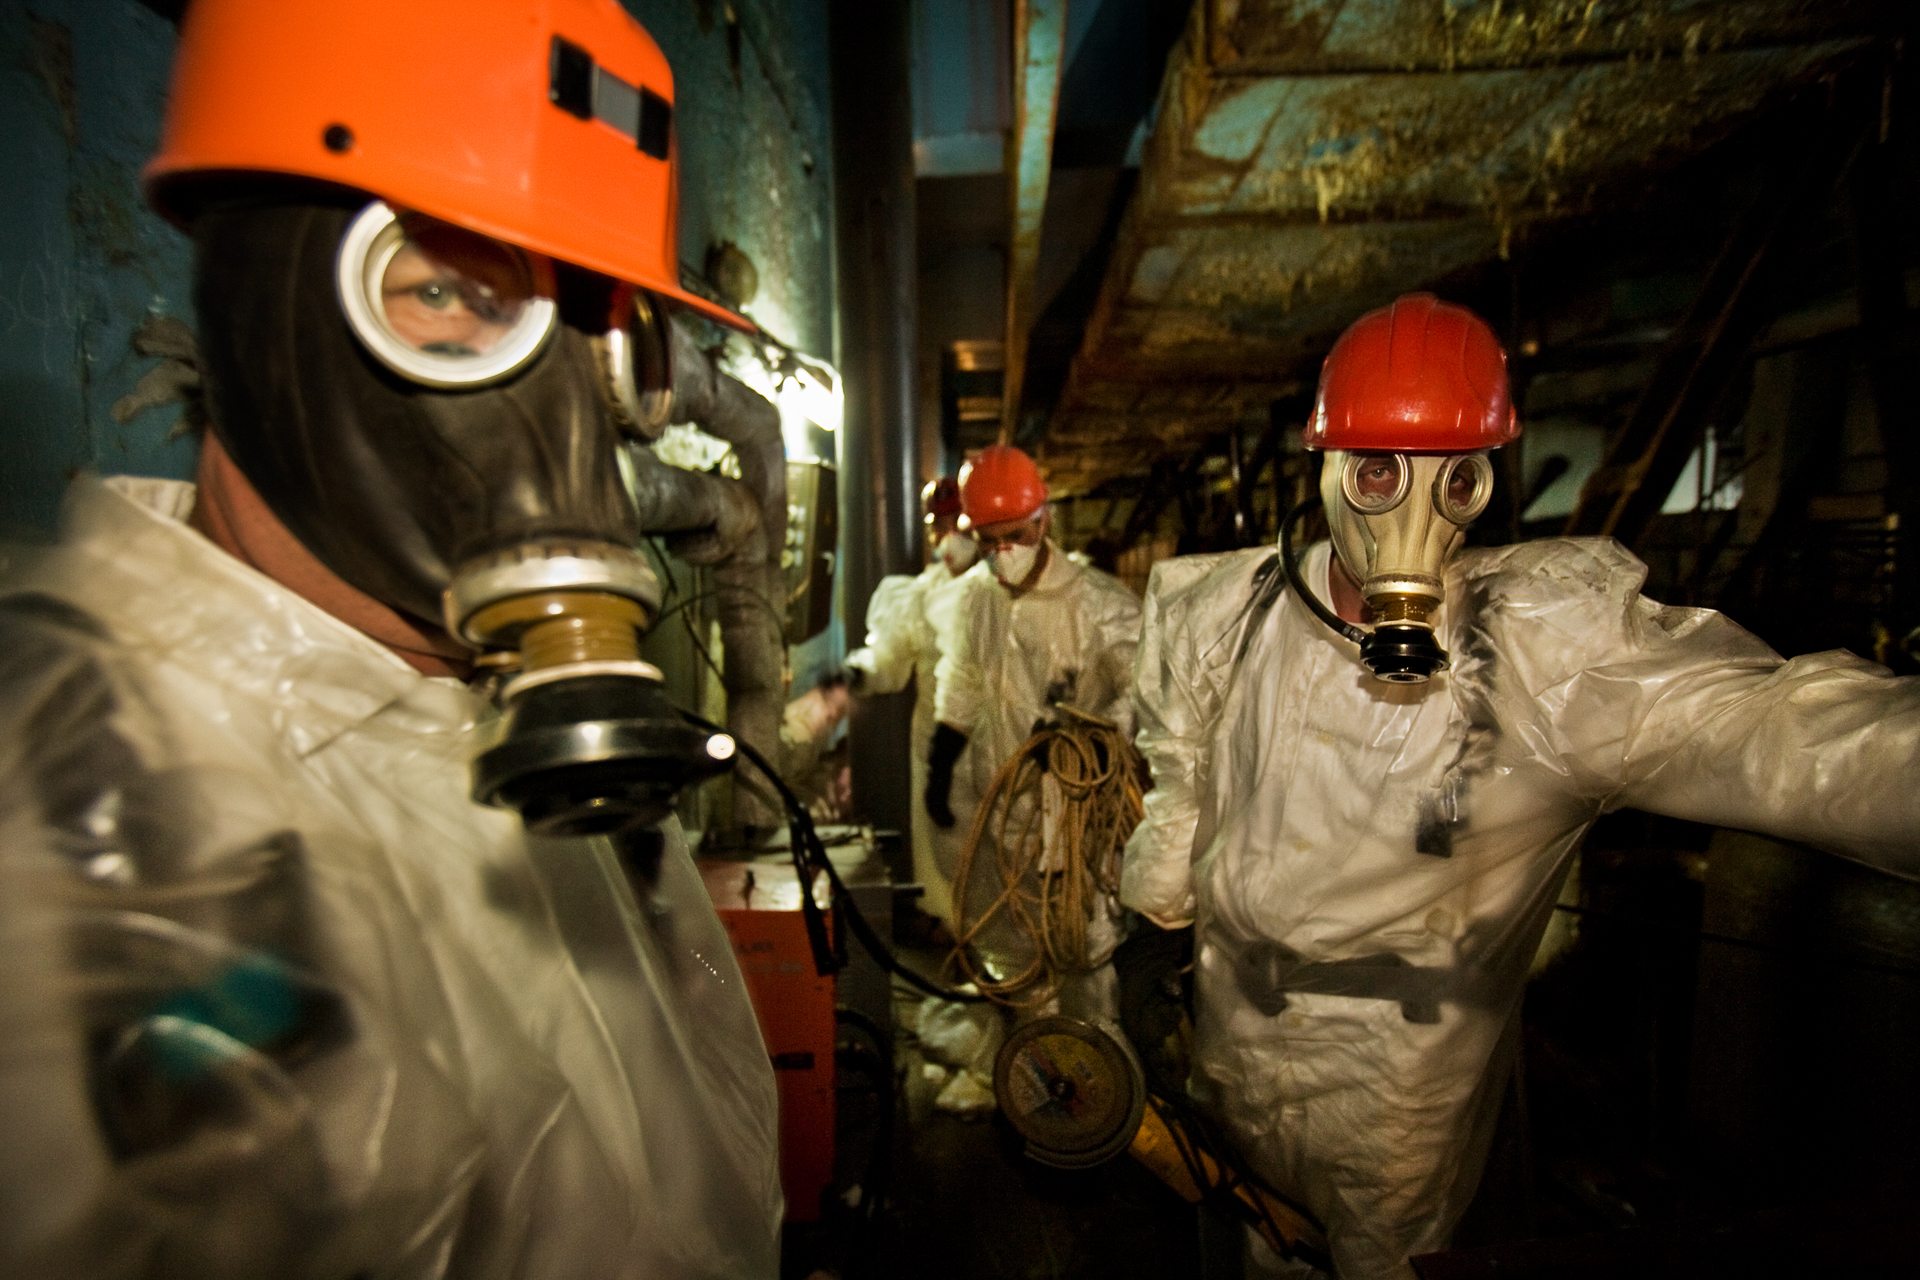 Chernobyl plant workers wearing plastic suits and respirators enter the so-called diarator stack, where radiation is so high that workers can risk shifts no longer than 15 minutes per day.  Chernobyl Nuclear Power Plant, Ukraine